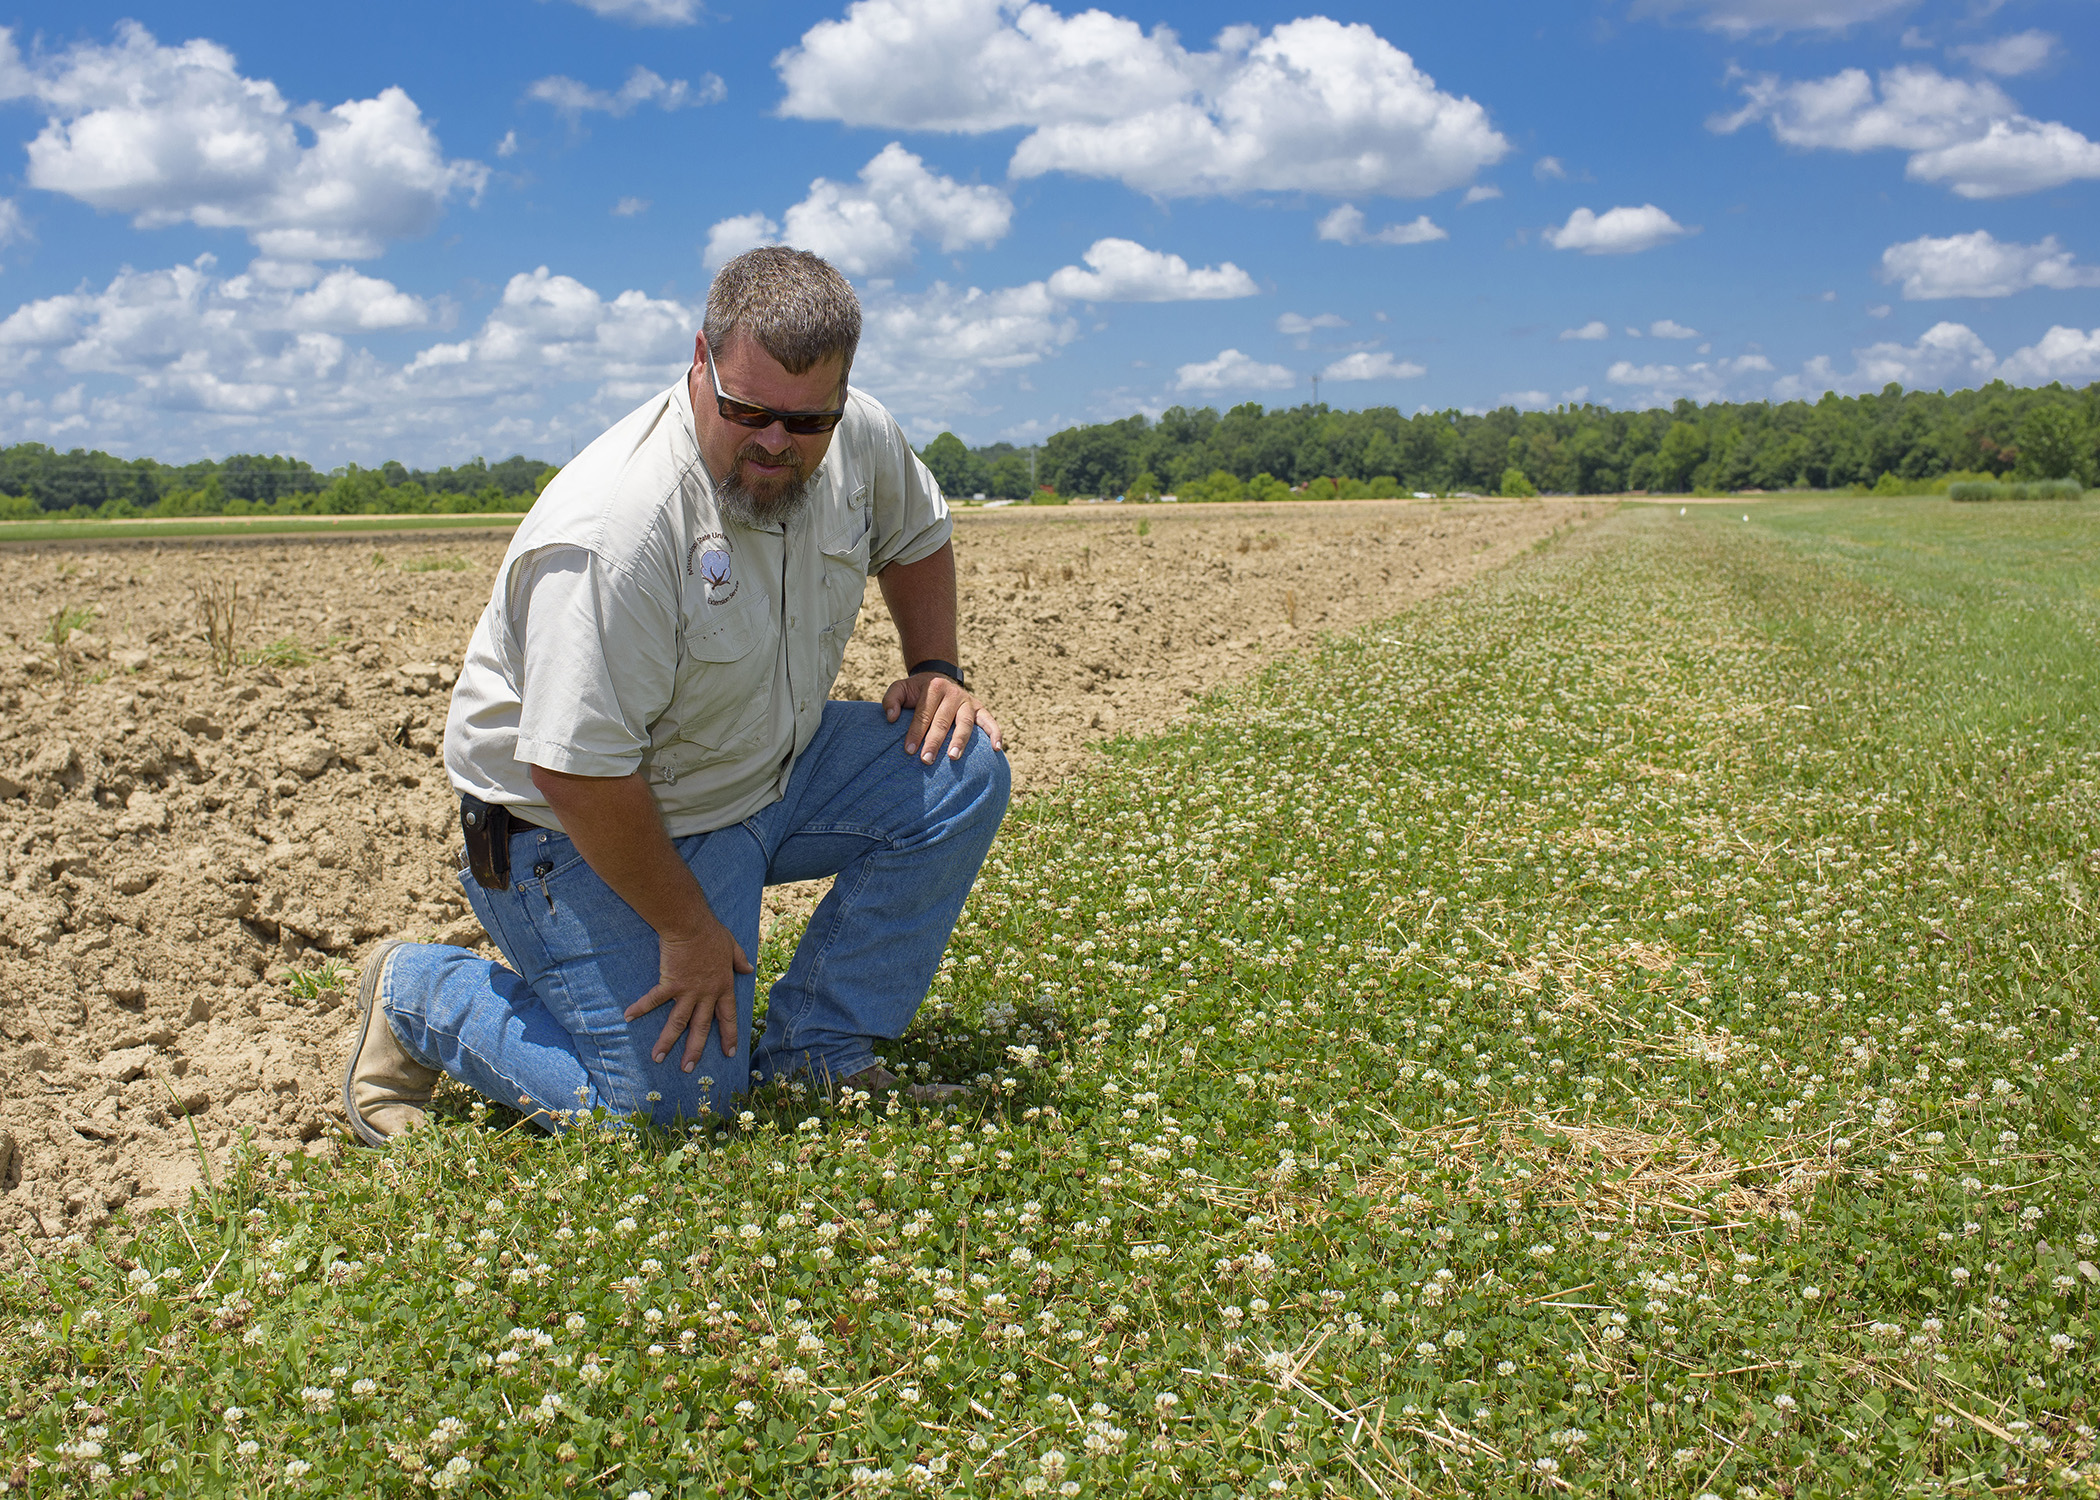 What looks like weeds to a farmer or landowner is forage for pollinators  such as honeybees